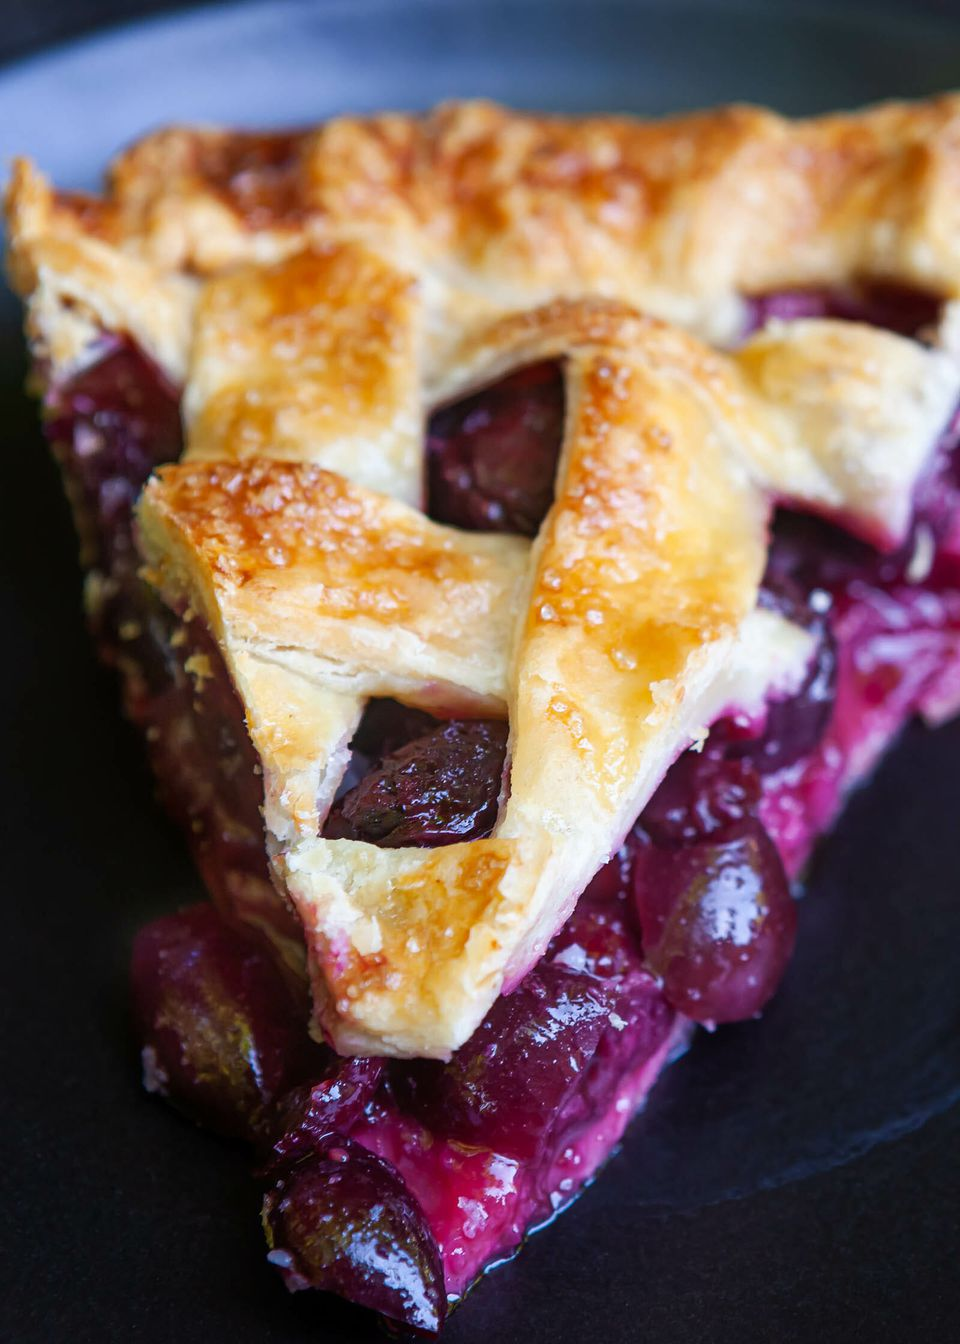 Close up of the best cherry pie on a plate. The pie has a lattice crust and the cherry pie filling is visible.